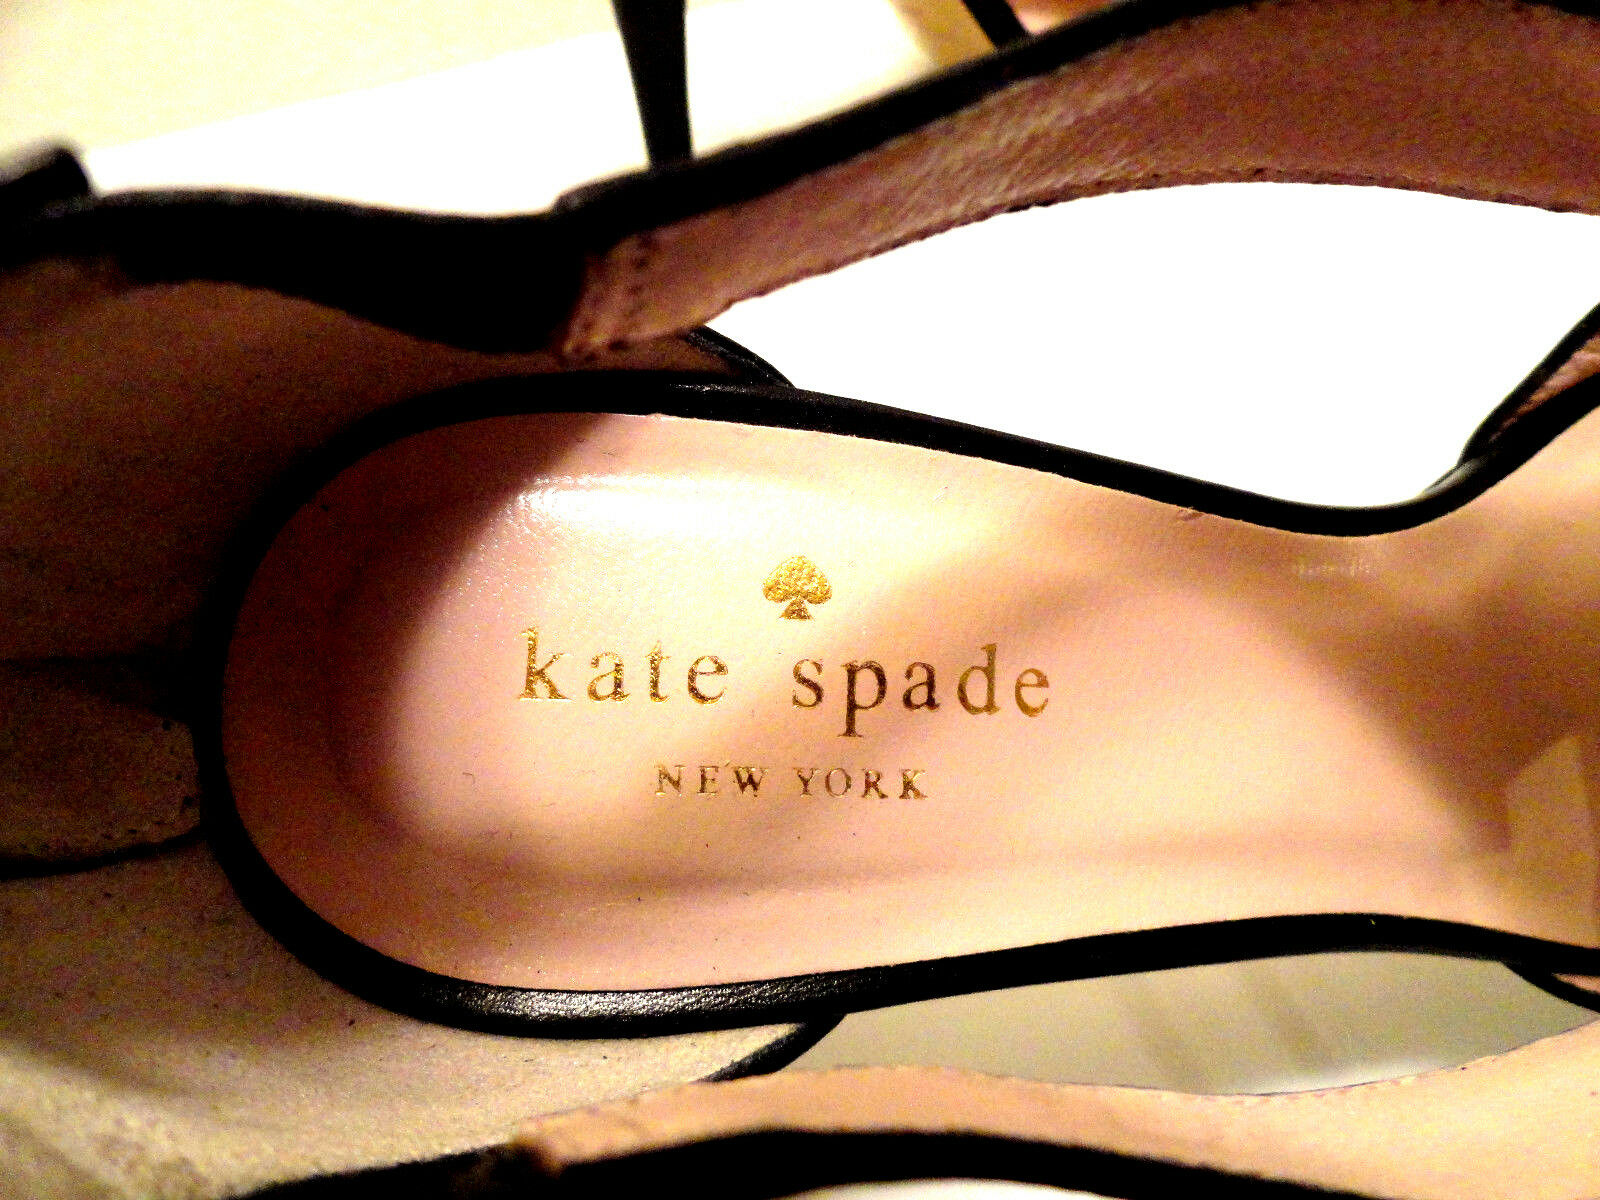 KATE SPADE NEW YORK HIGH HEELS HEELS HEELS schwarz 8B 596549